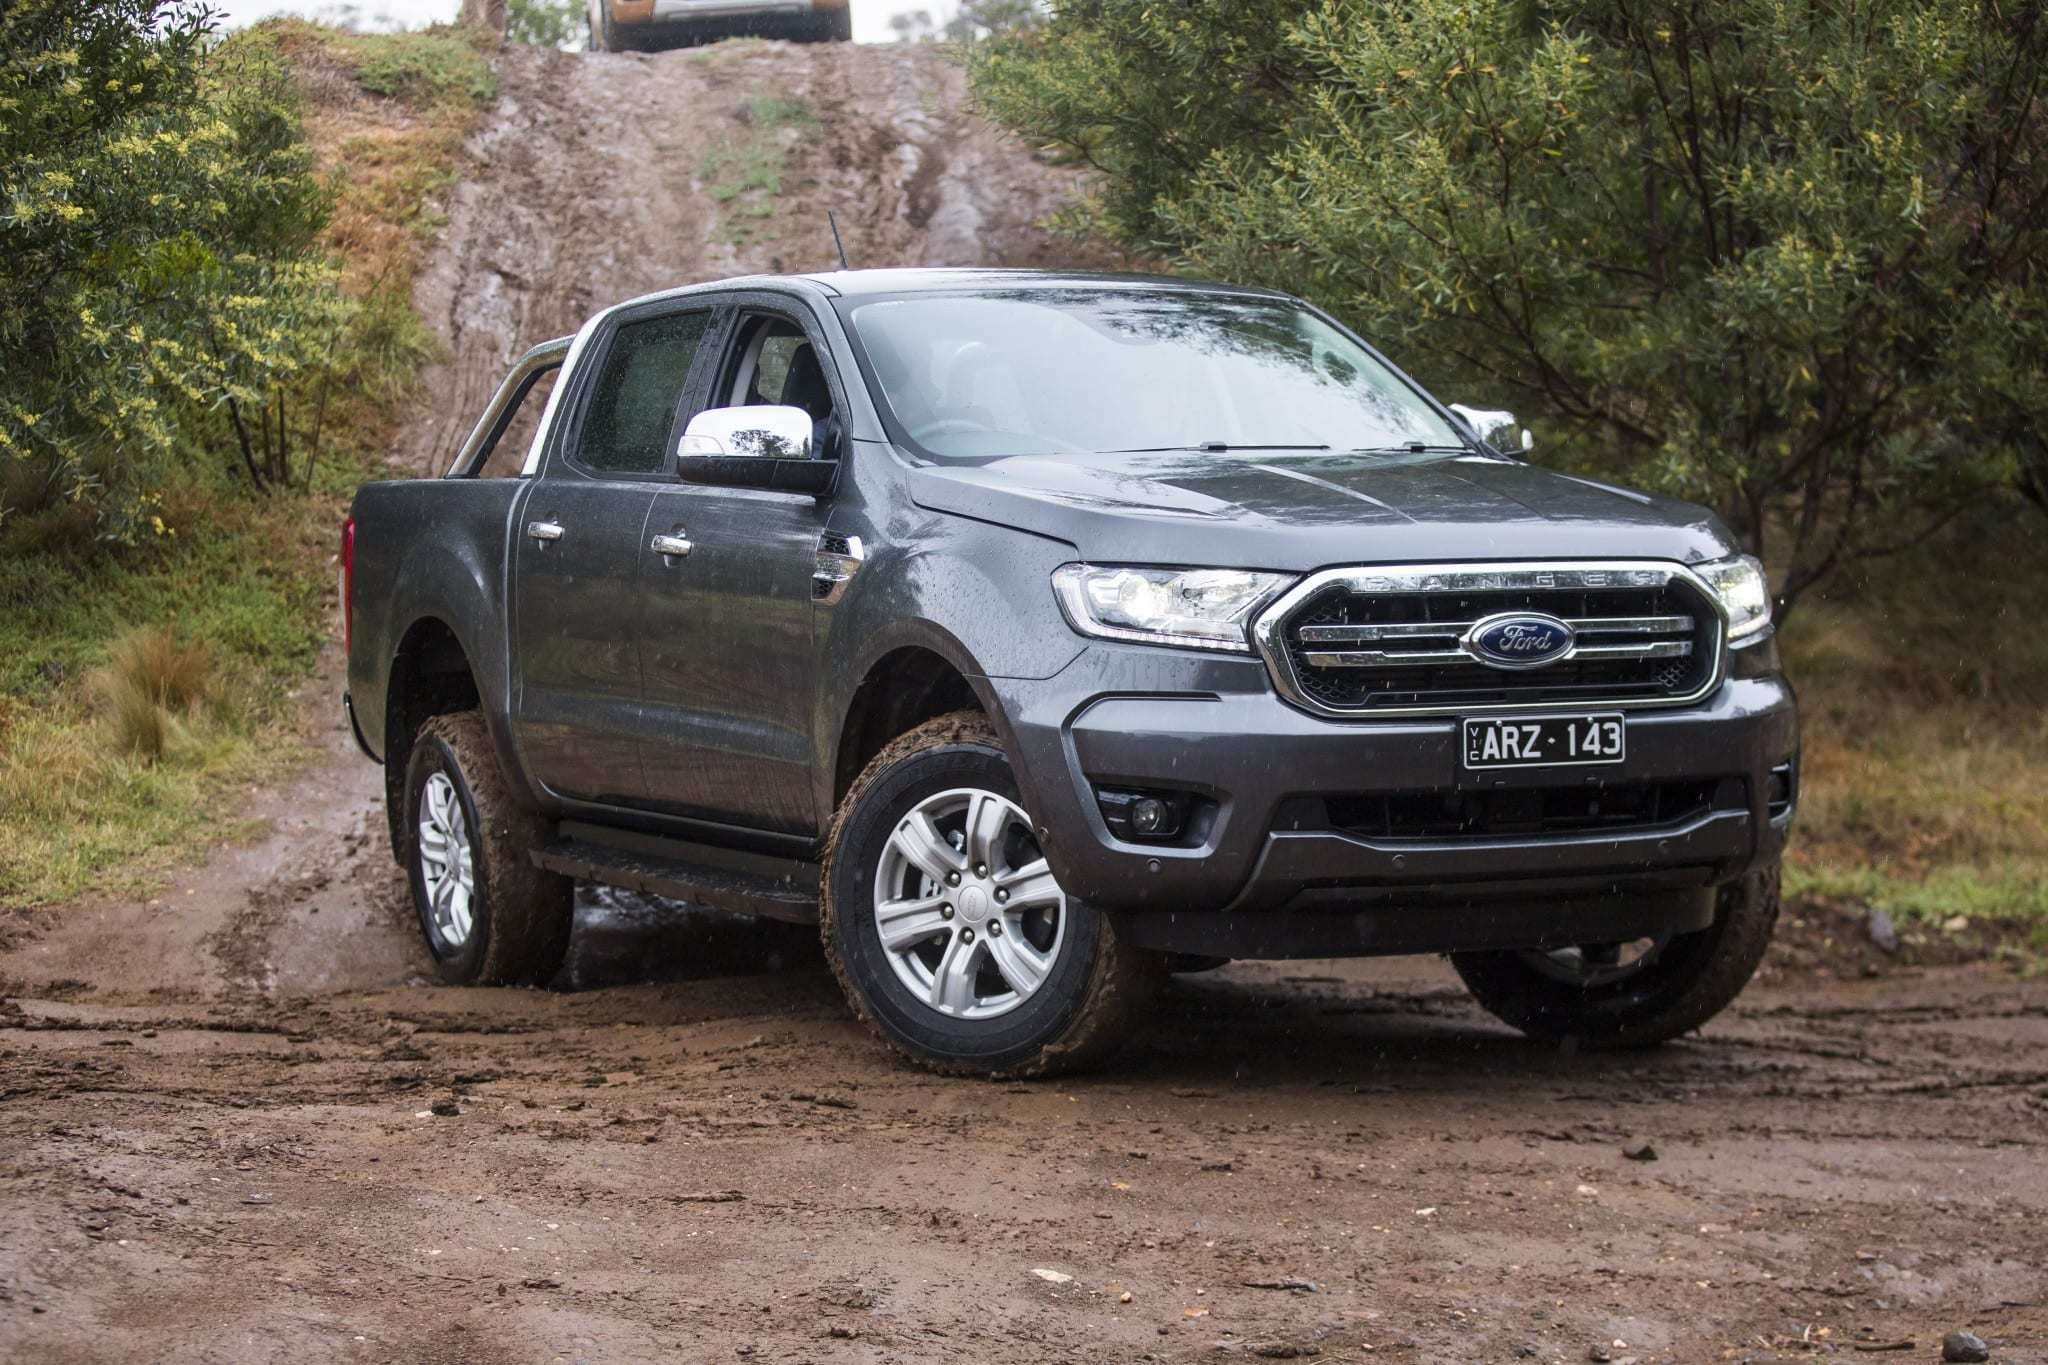 14 New 2019 Ford Ranger Australia Release Date And Concept